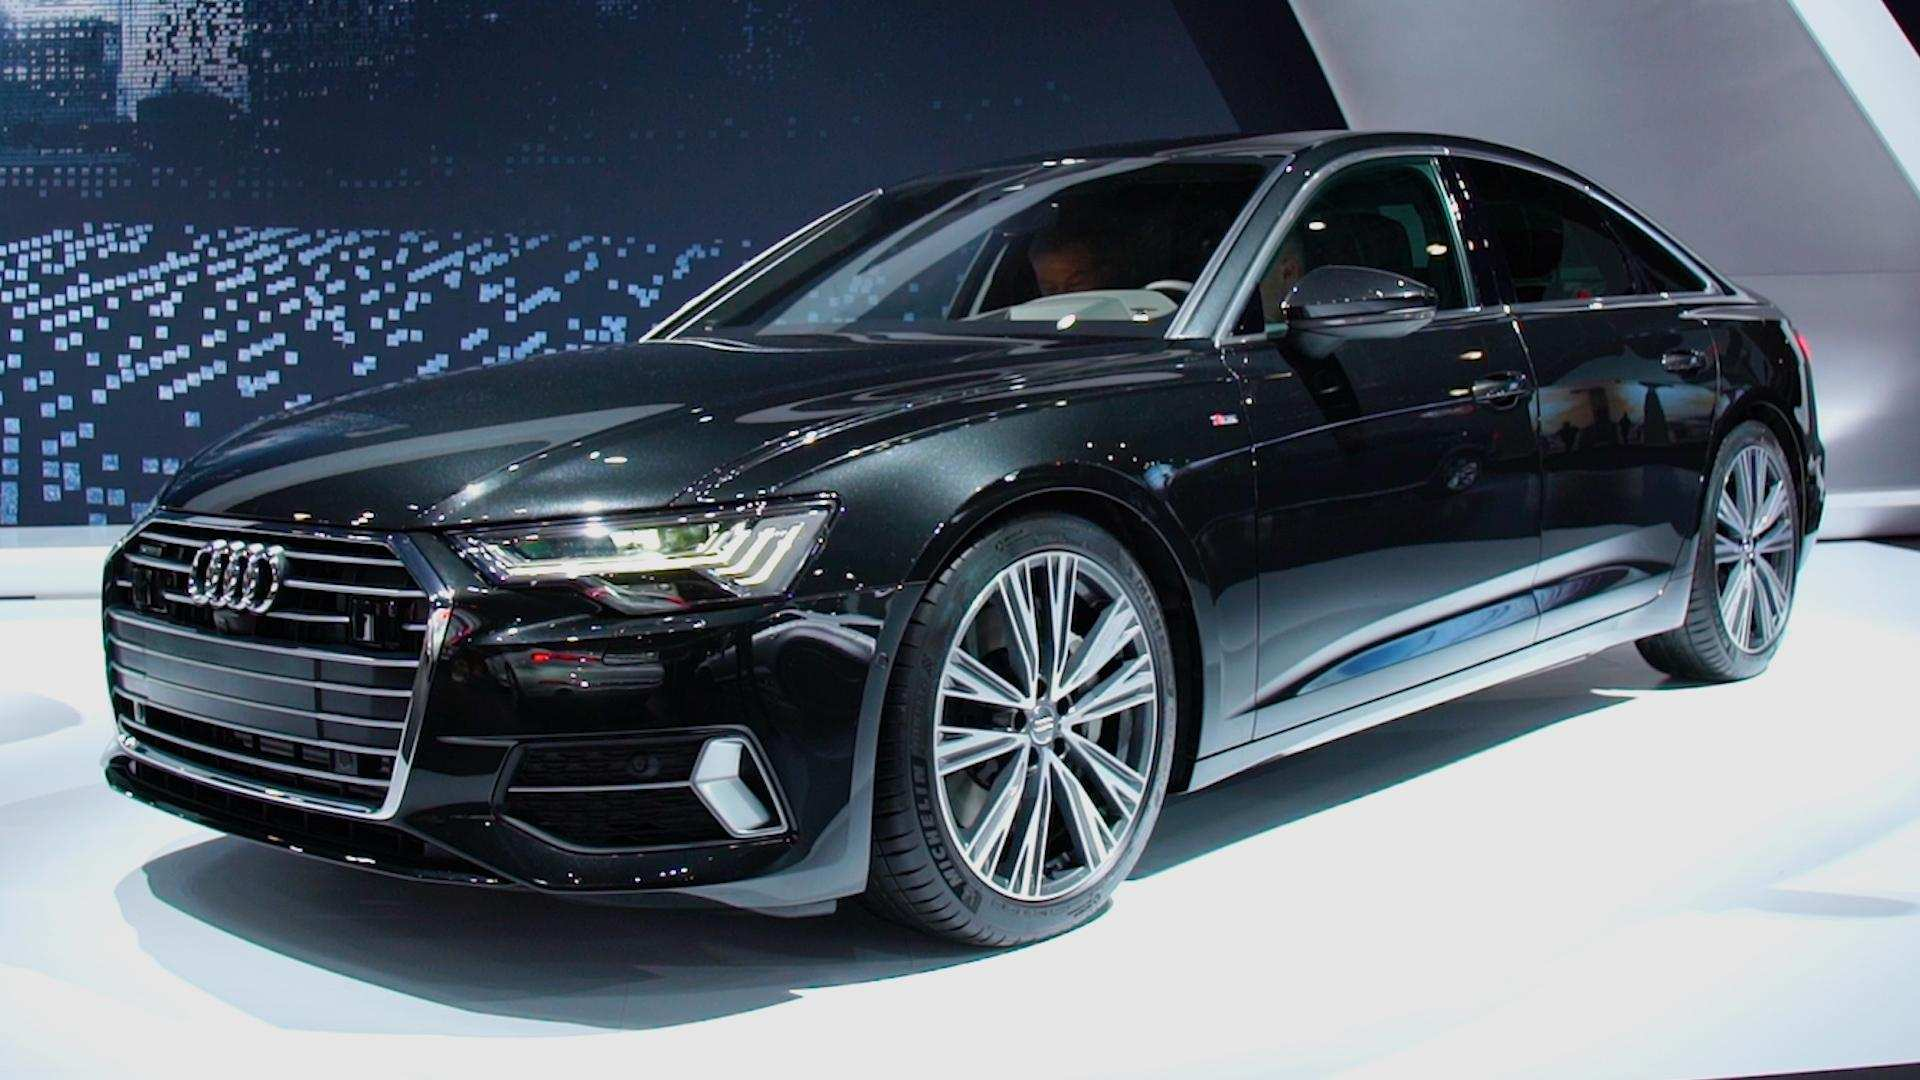 72 All New 2019 The Audi A6 Configurations with 2019 The Audi A6